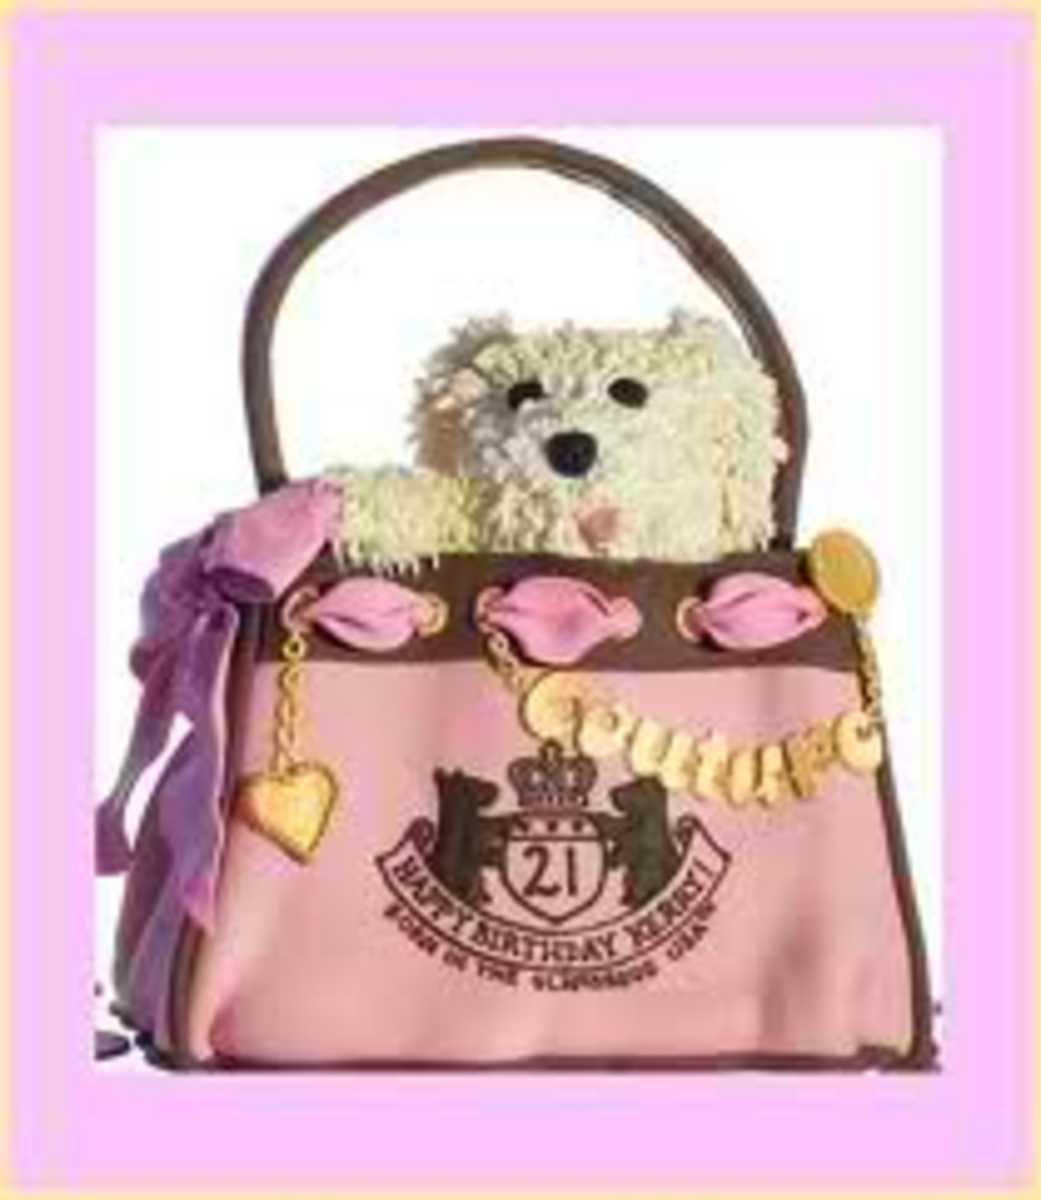 This Juicy inspired purse cake is the cutest thing since the teddy bear sticking out the top was created. I love it